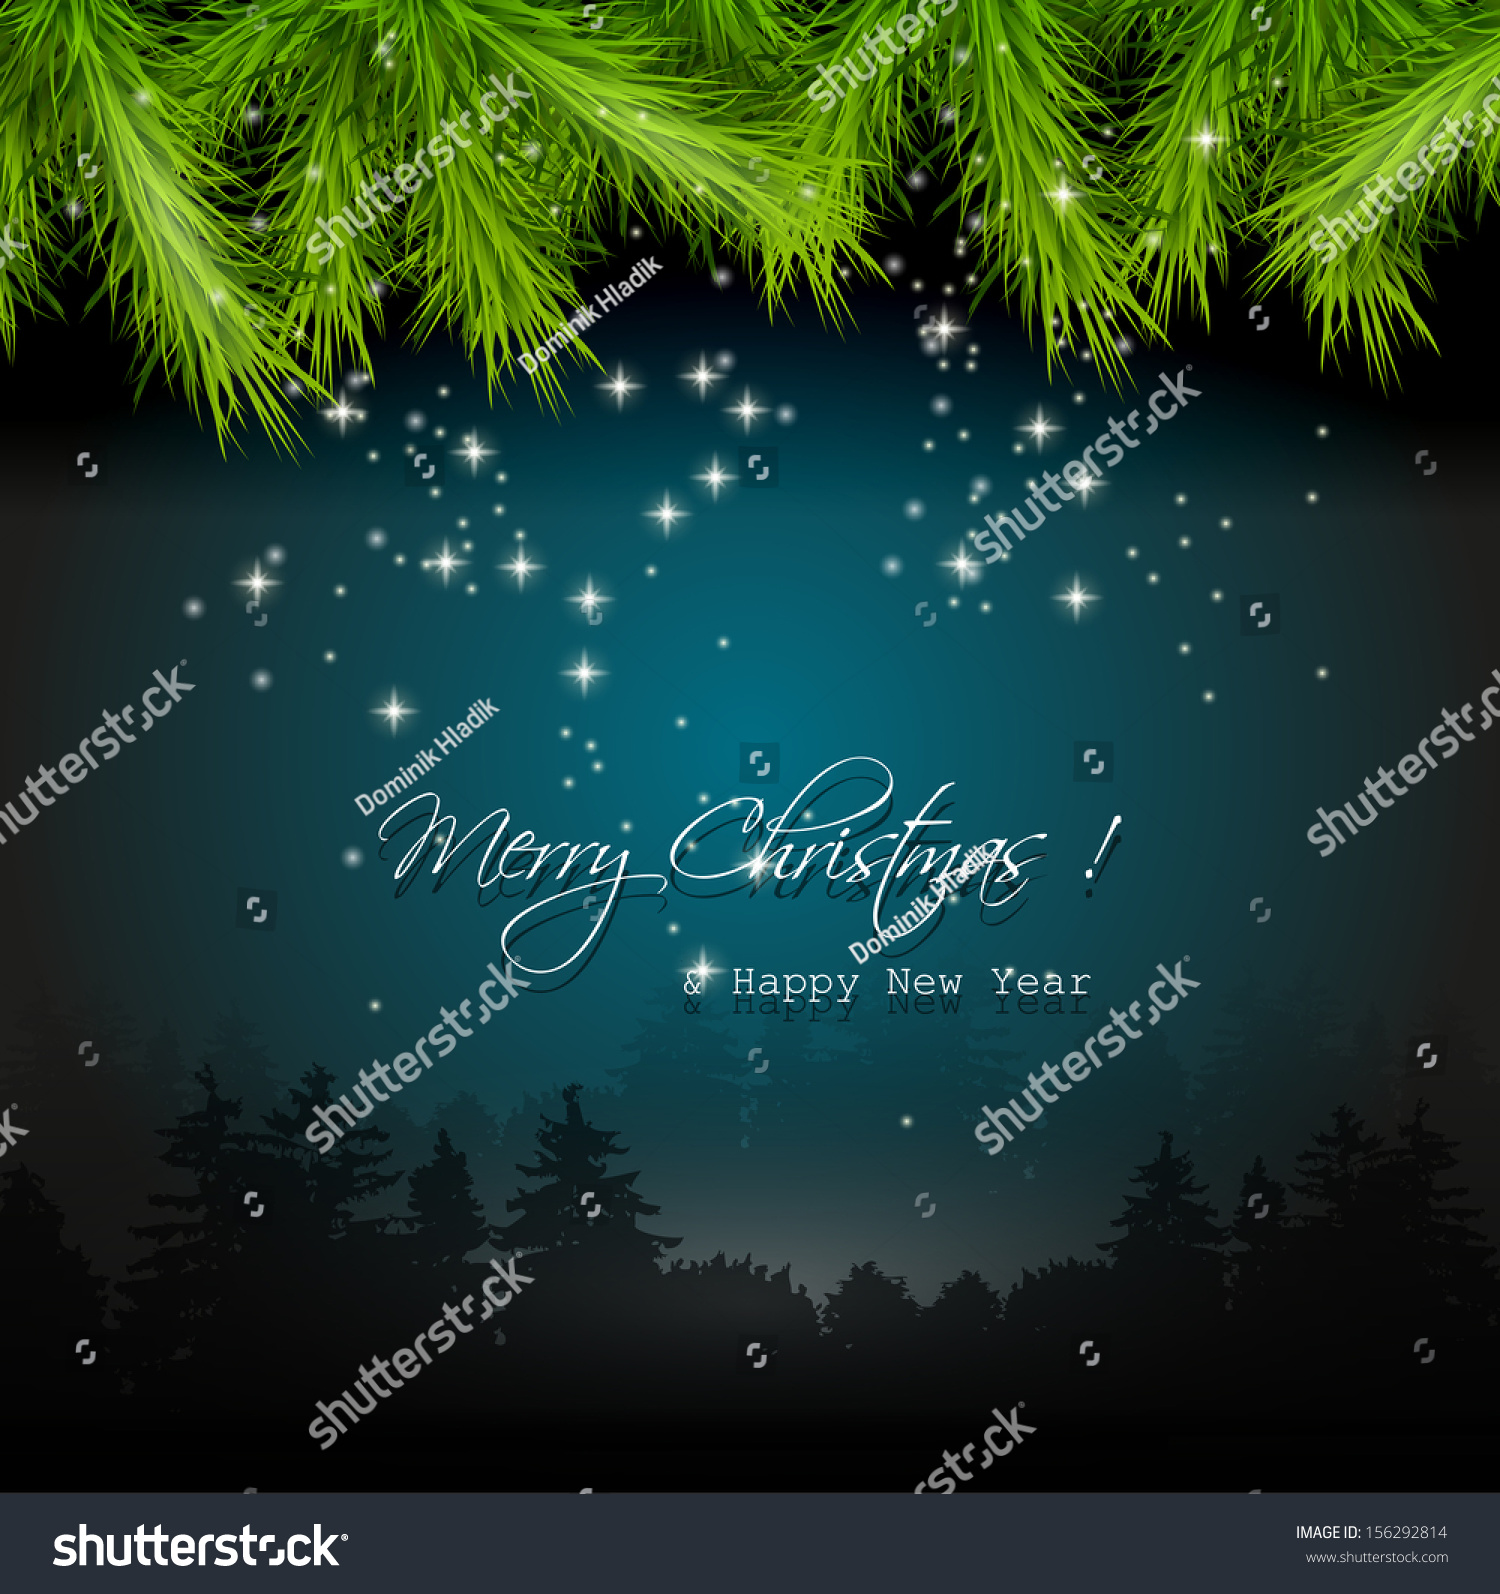 christmas flyer tree leaves on dark background stock vector christmas flyer tree leaves on dark background preview save to a lightbox